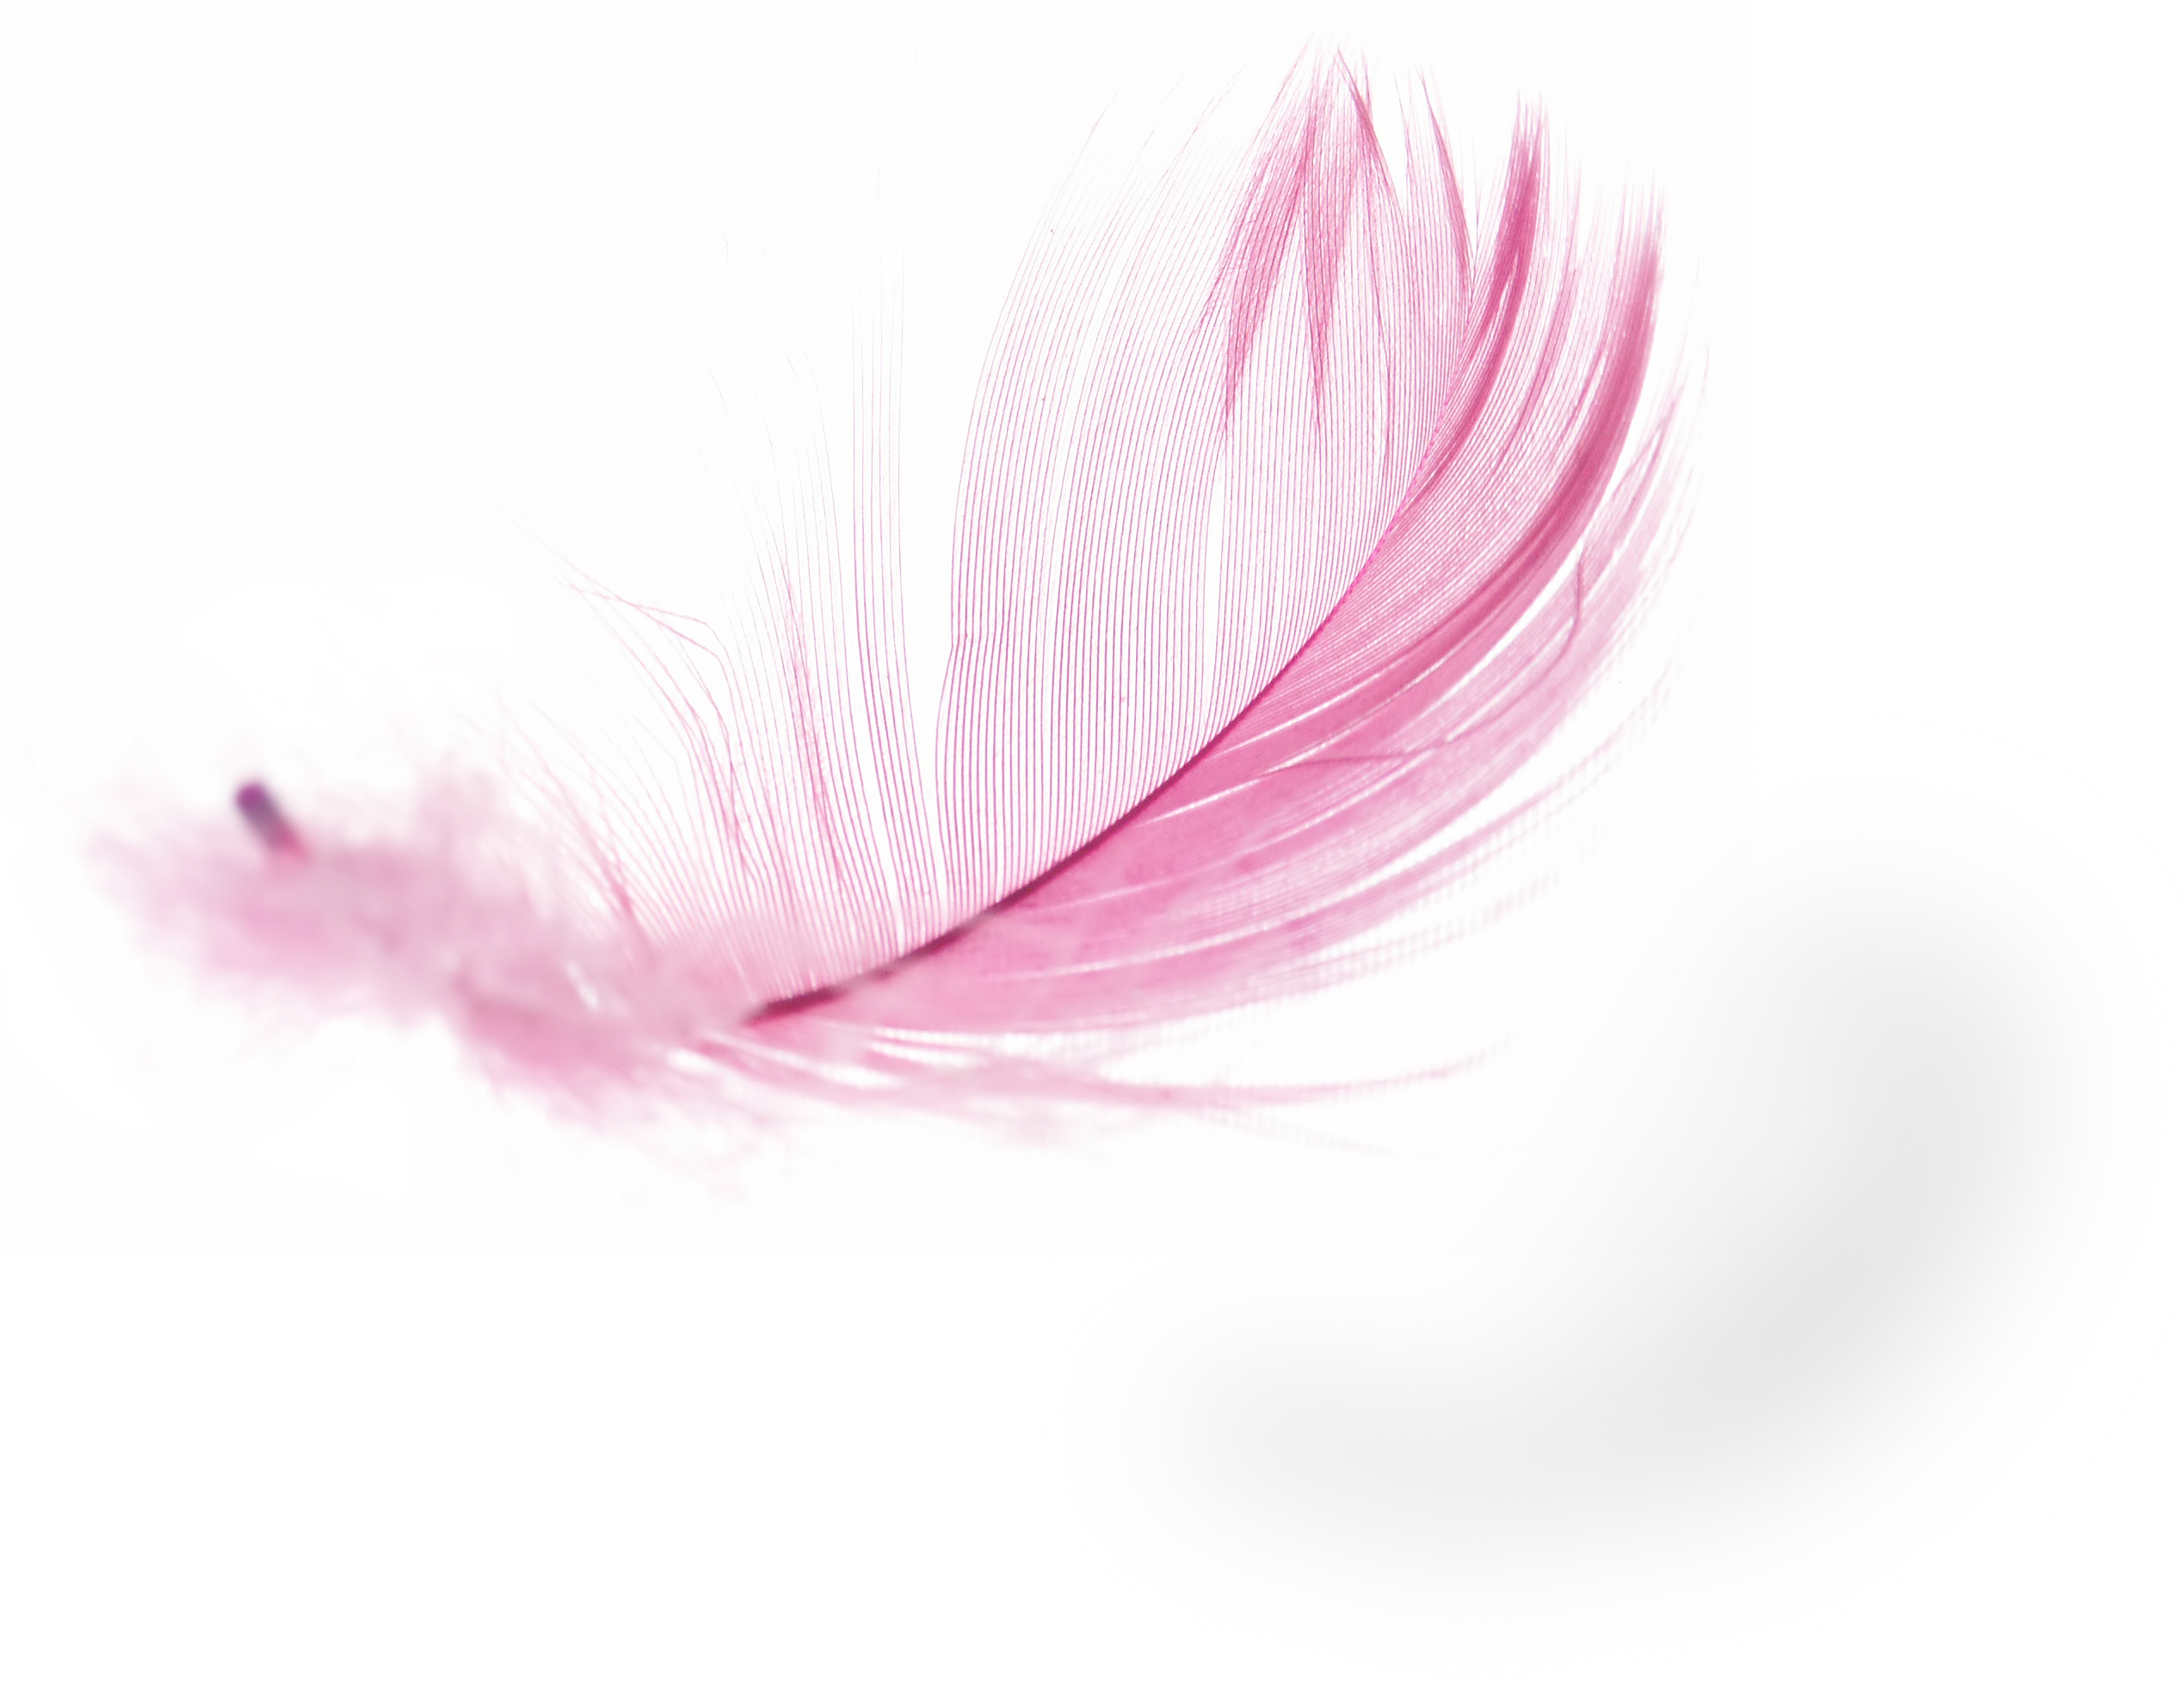 bigstock-Feather-4232008.jpg